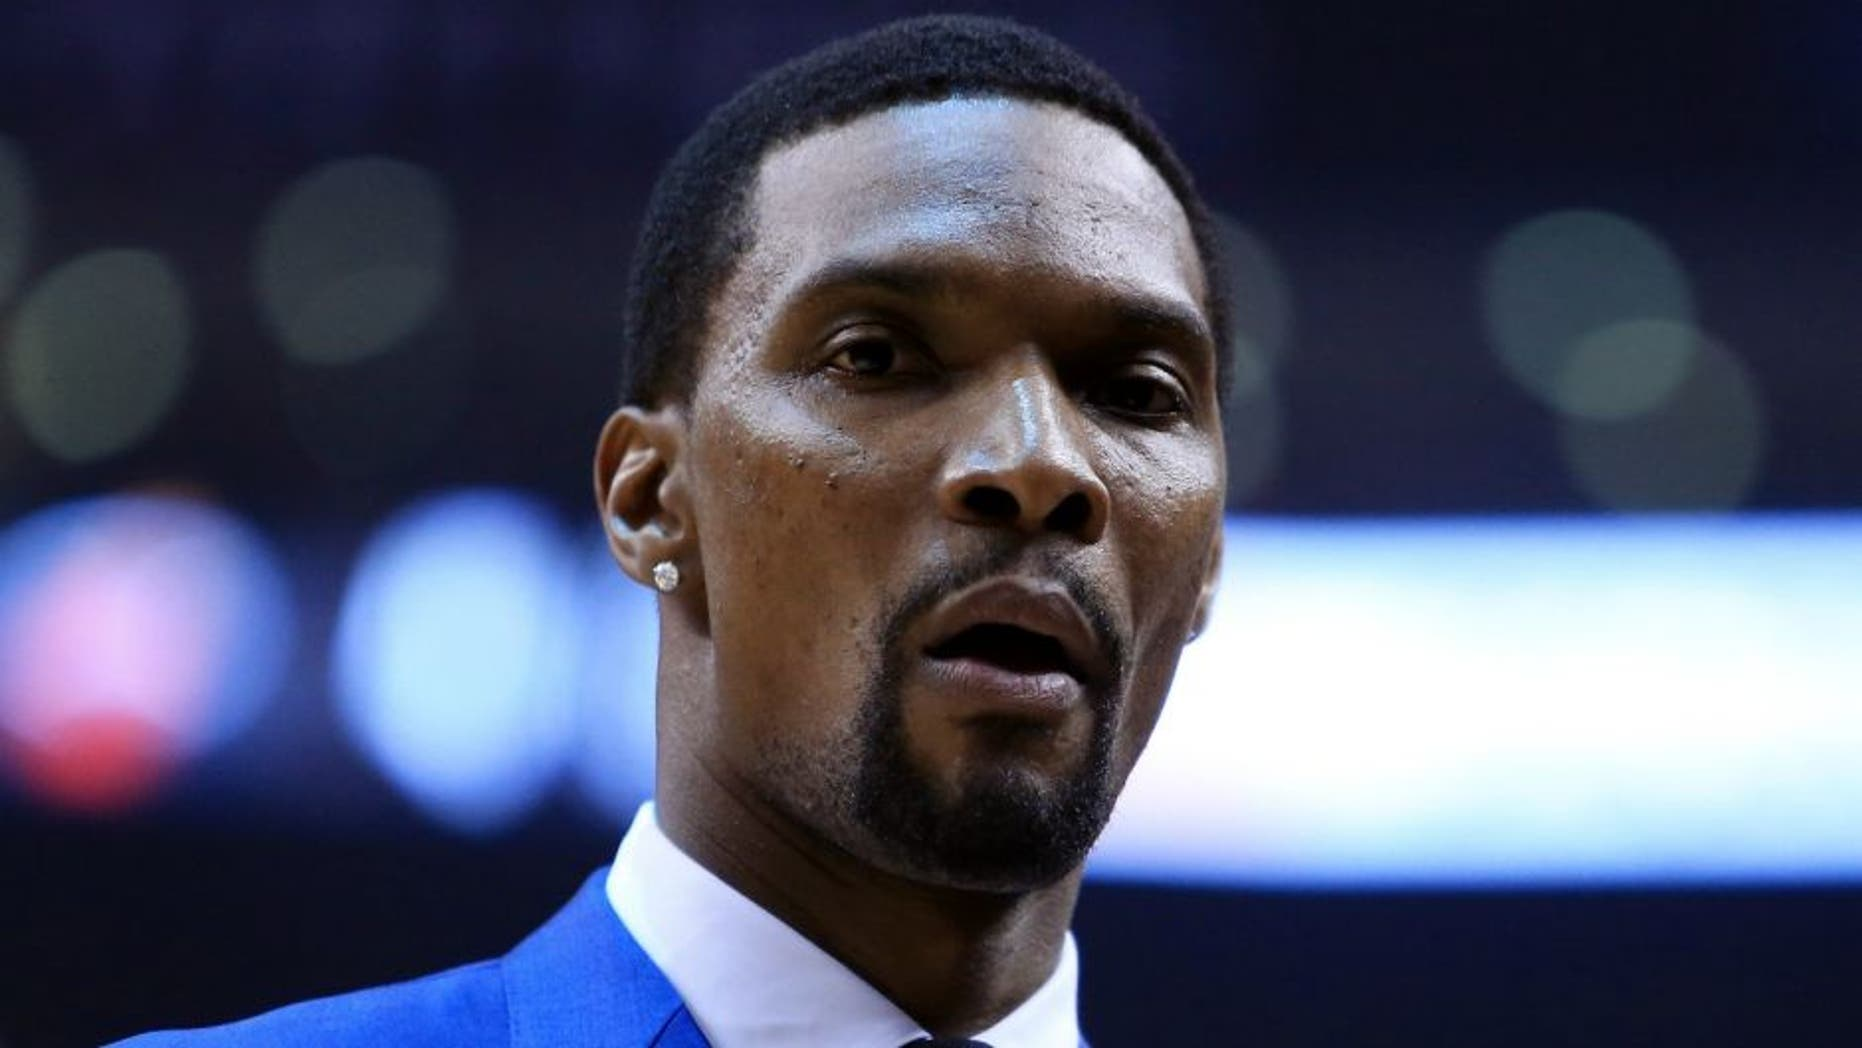 TORONTO, ON - MAY 03: Chris Bosh #1 of the Miami Heat looks on from the bench in the first half of Game One of the Eastern Conference Semifinals against the Toronto Raptors during the 2016 NBA Playoffs at the Air Canada Centre on May 3, 2016 in Toronto, Ontario, Canada. NOTE TO USER: User expressly acknowledges and agrees that, by downloading and or using this photograph, User is consenting to the terms and conditions of the Getty Images License Agreement. (Photo by Vaughn Ridley/Getty Images)